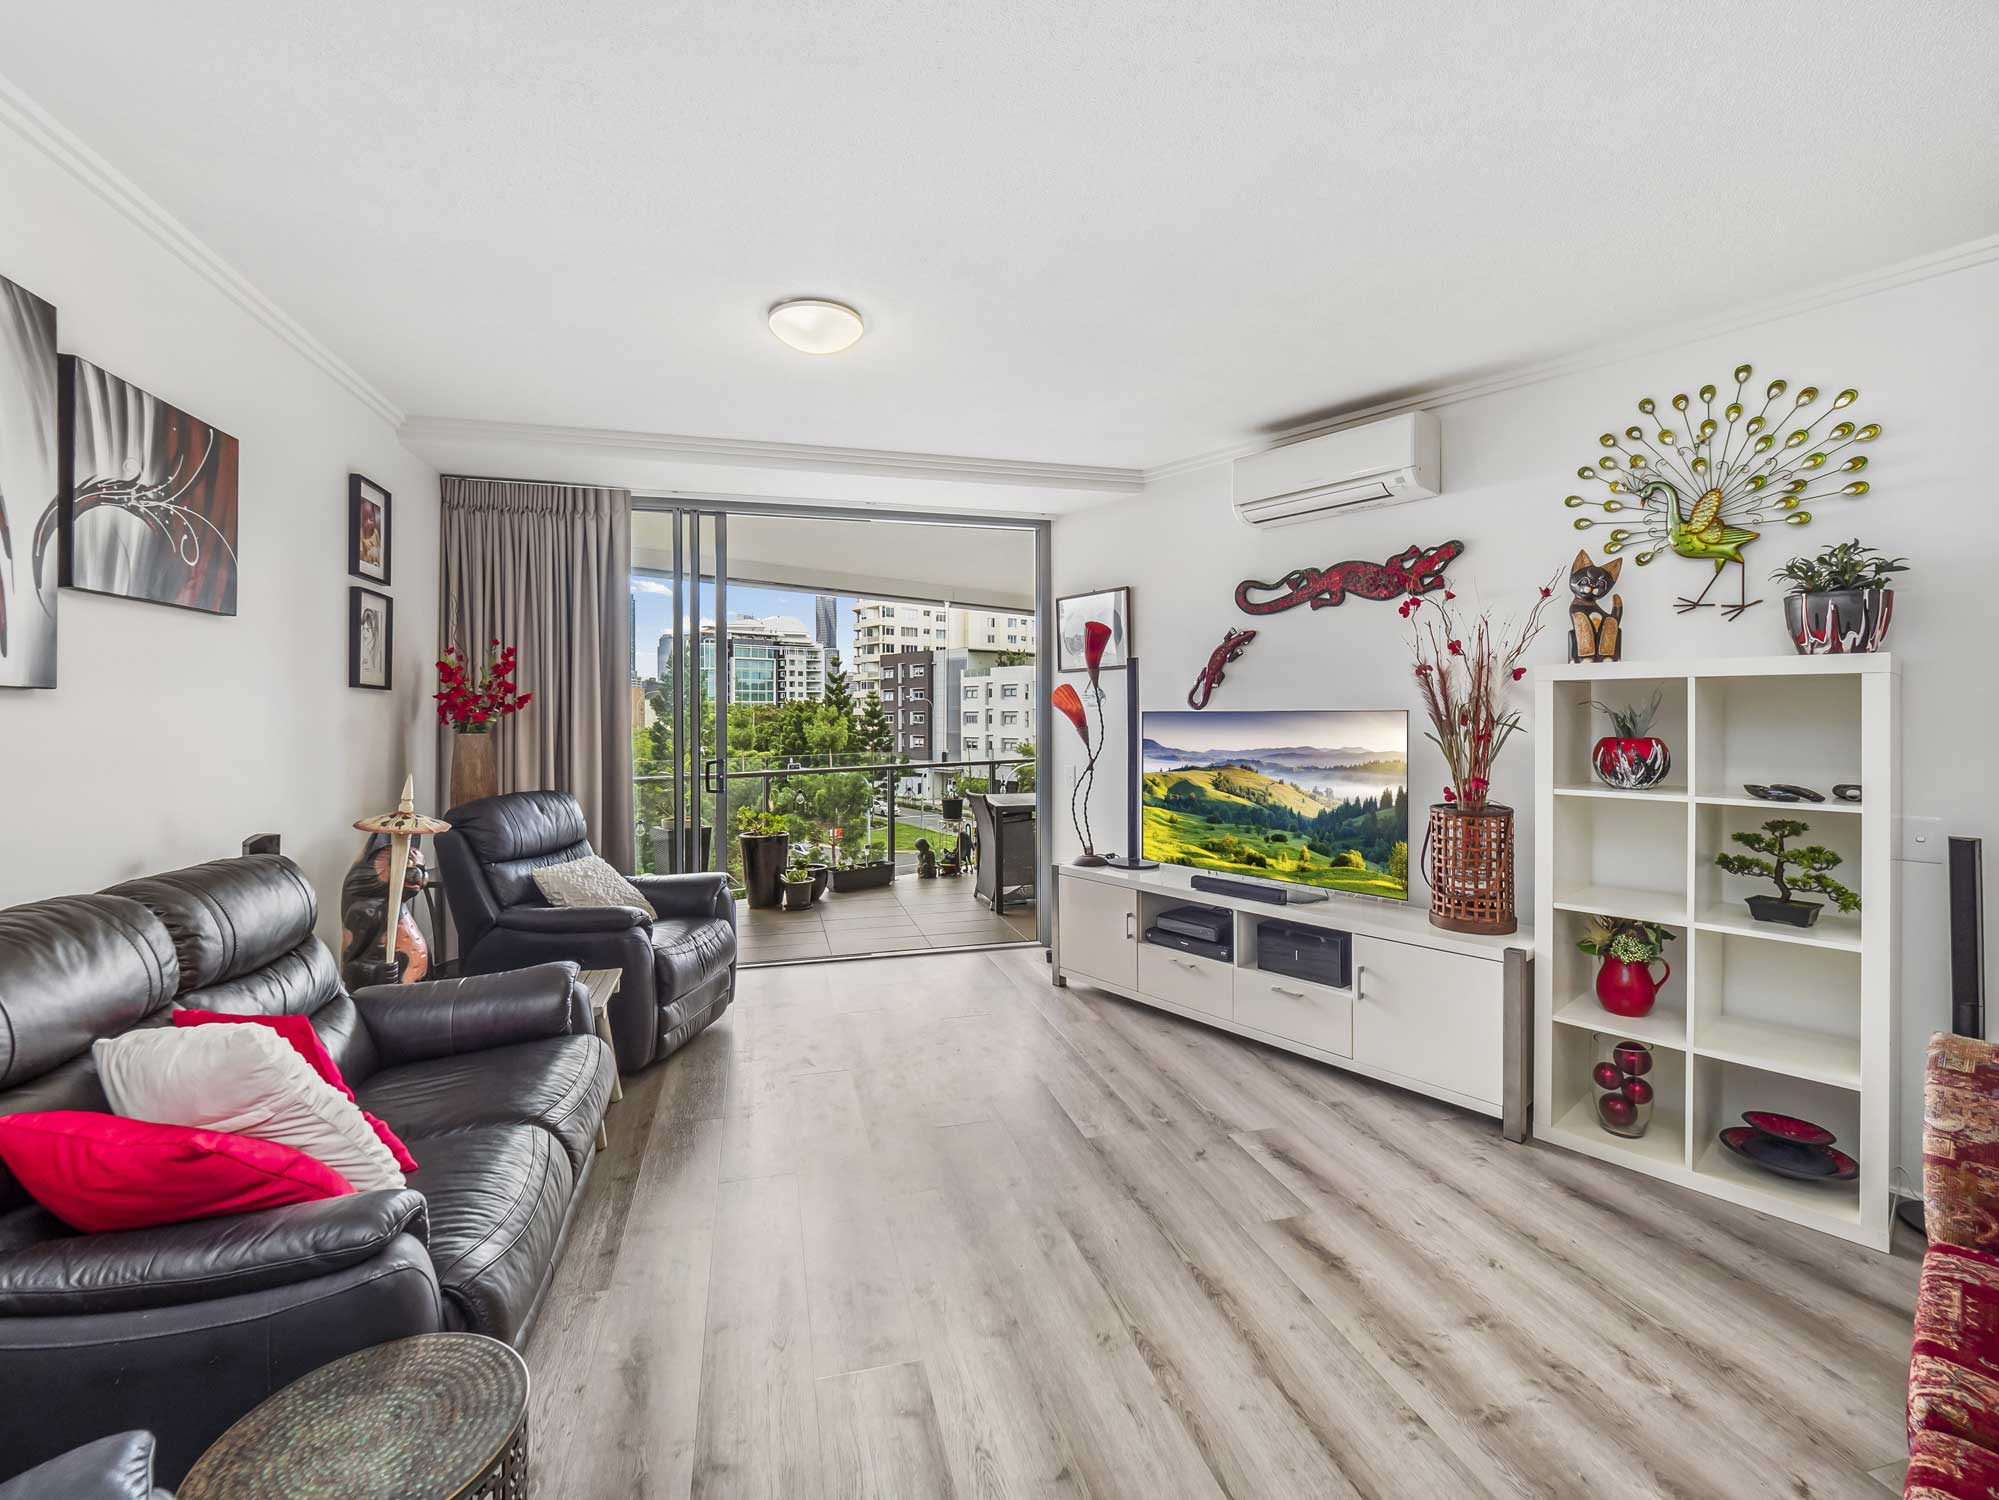 Real estate photography of Kangaroo Point apartment for sale - the main living area